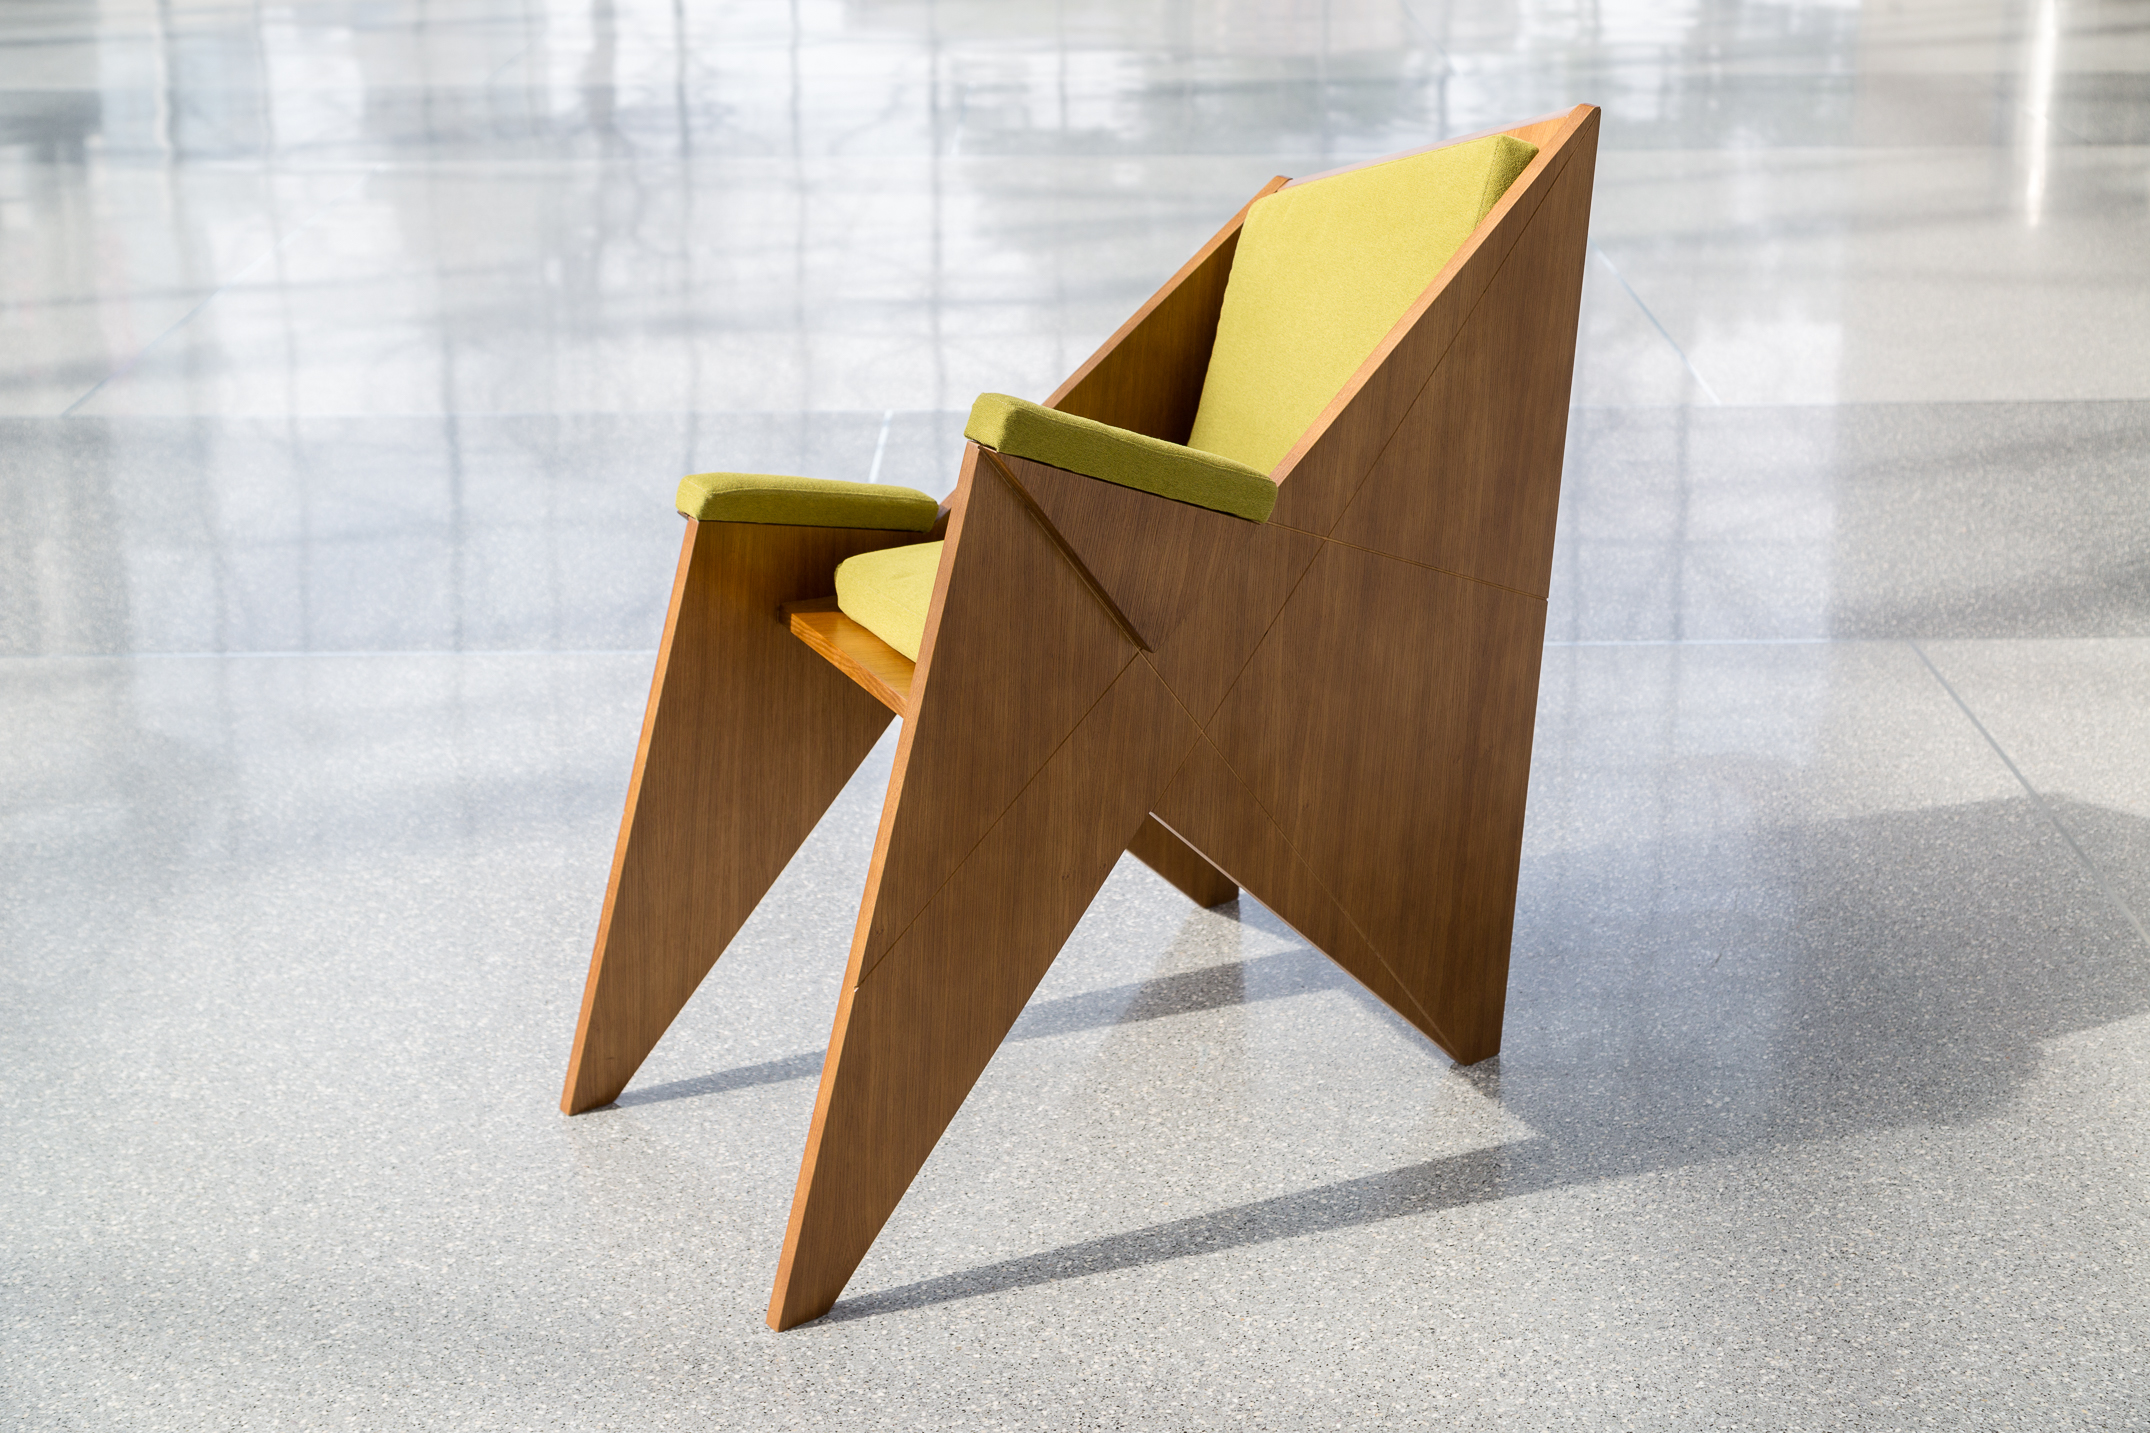 modernist furniture designer maciej markowicz premieres objets d  - wiczny armchair () inspired by felix augenfeld's  chair made forsigmund freud